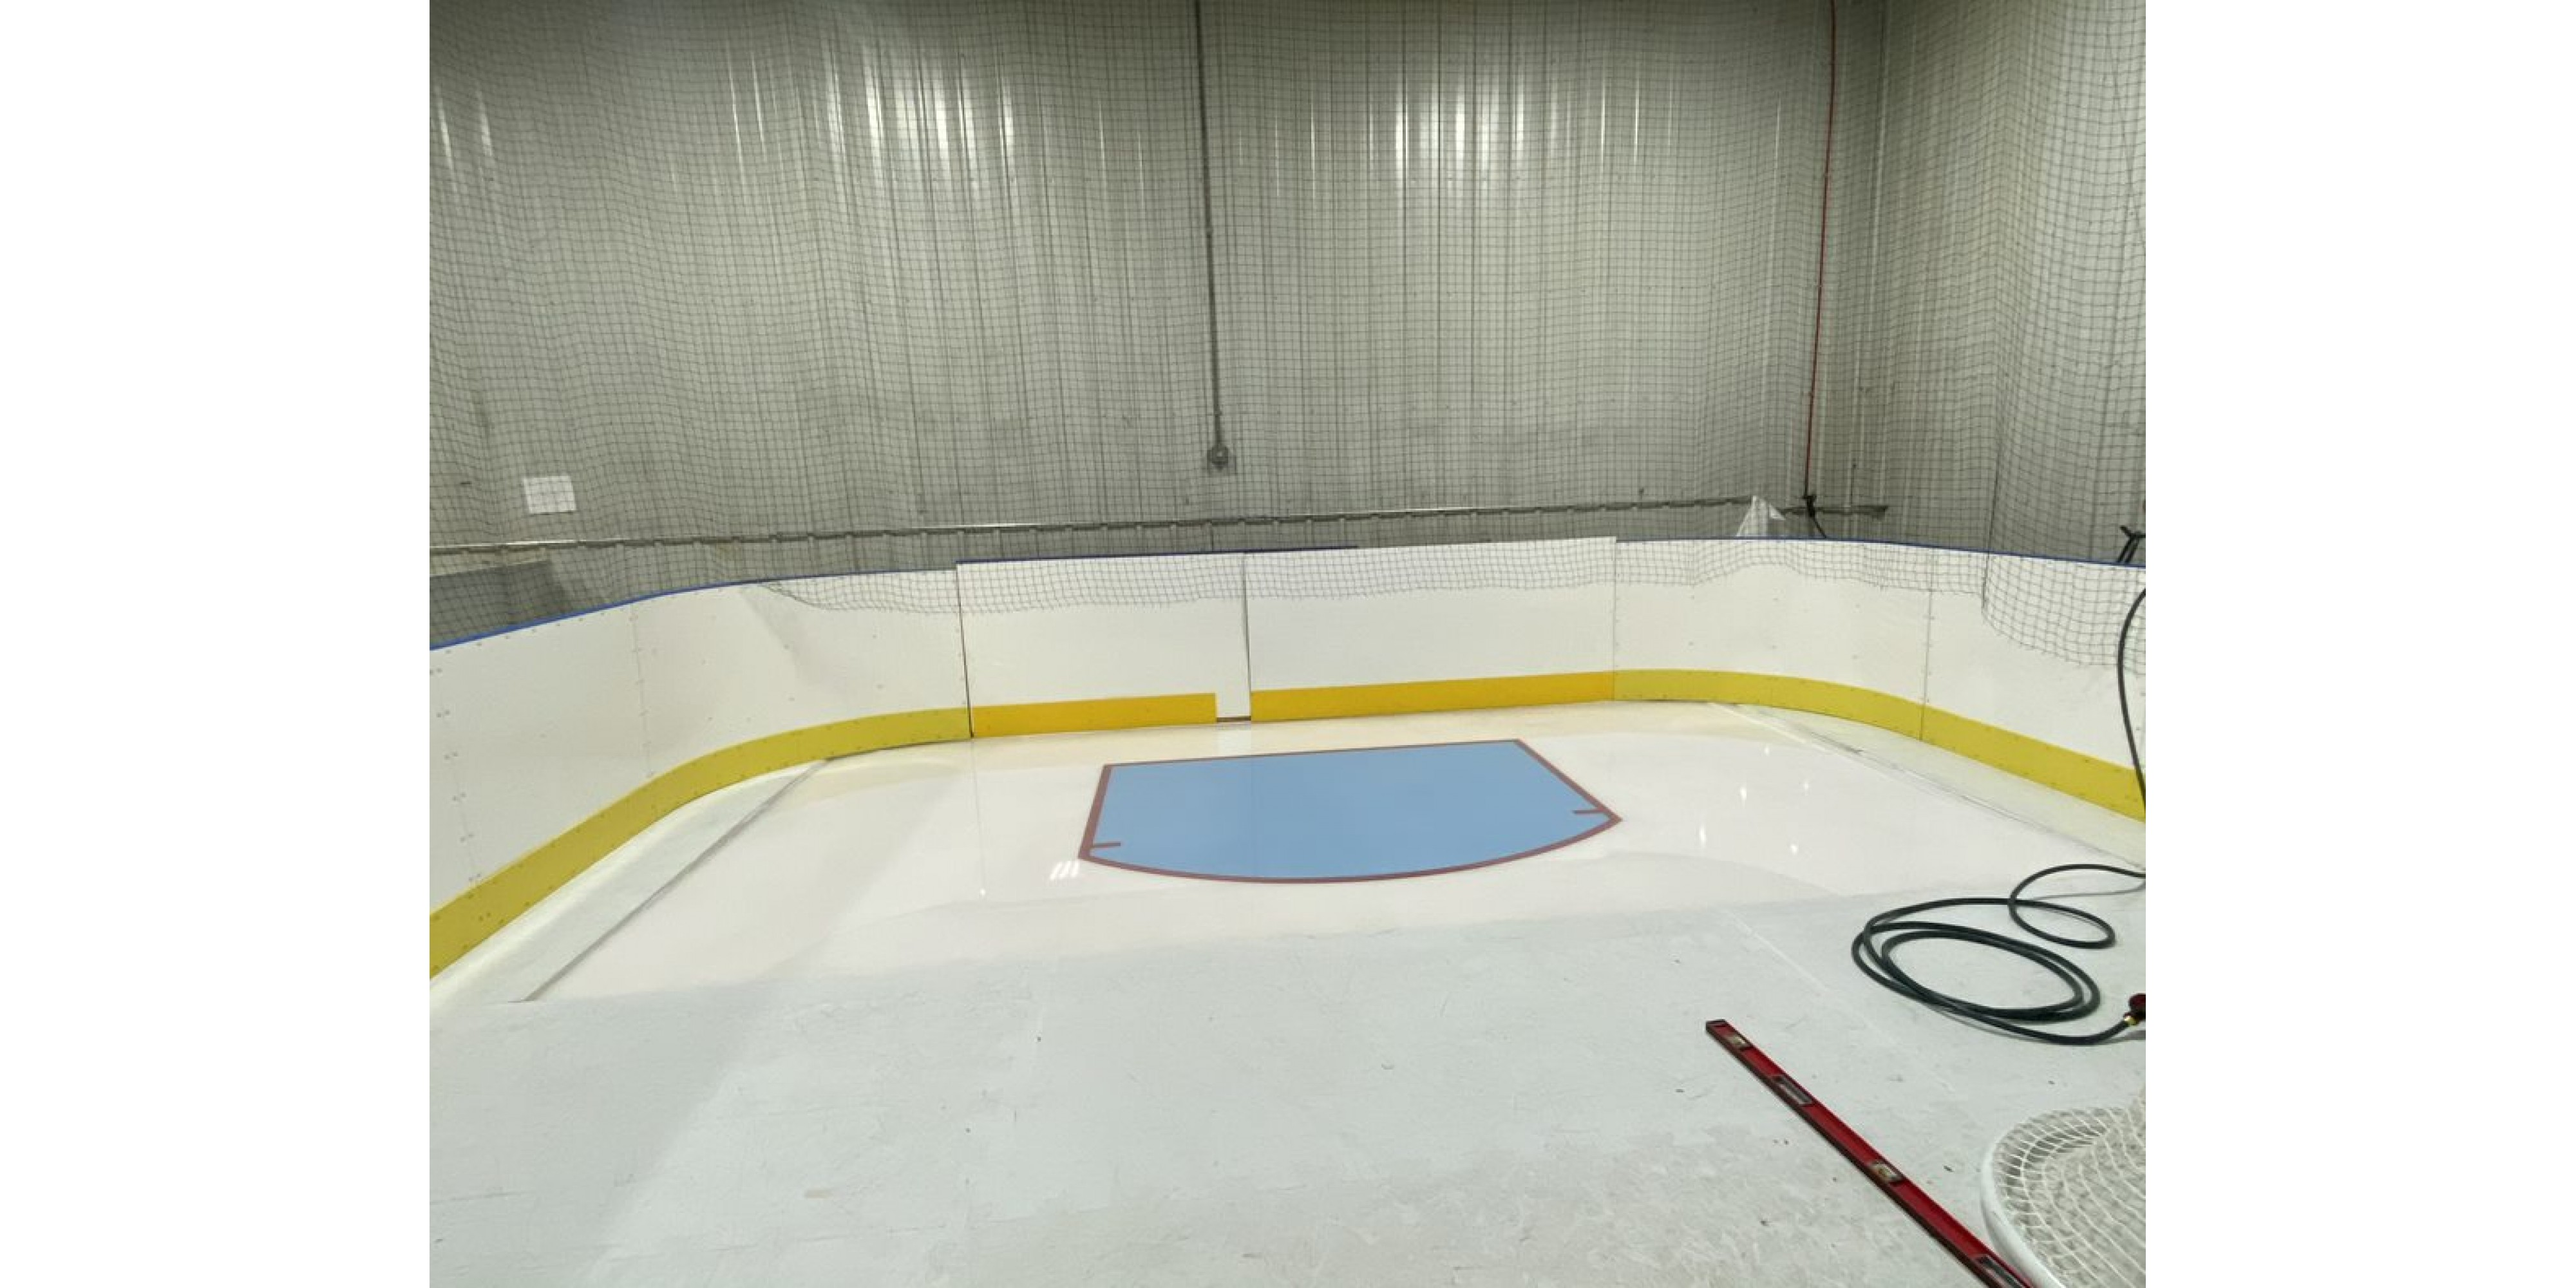 Goalie Trainer Project